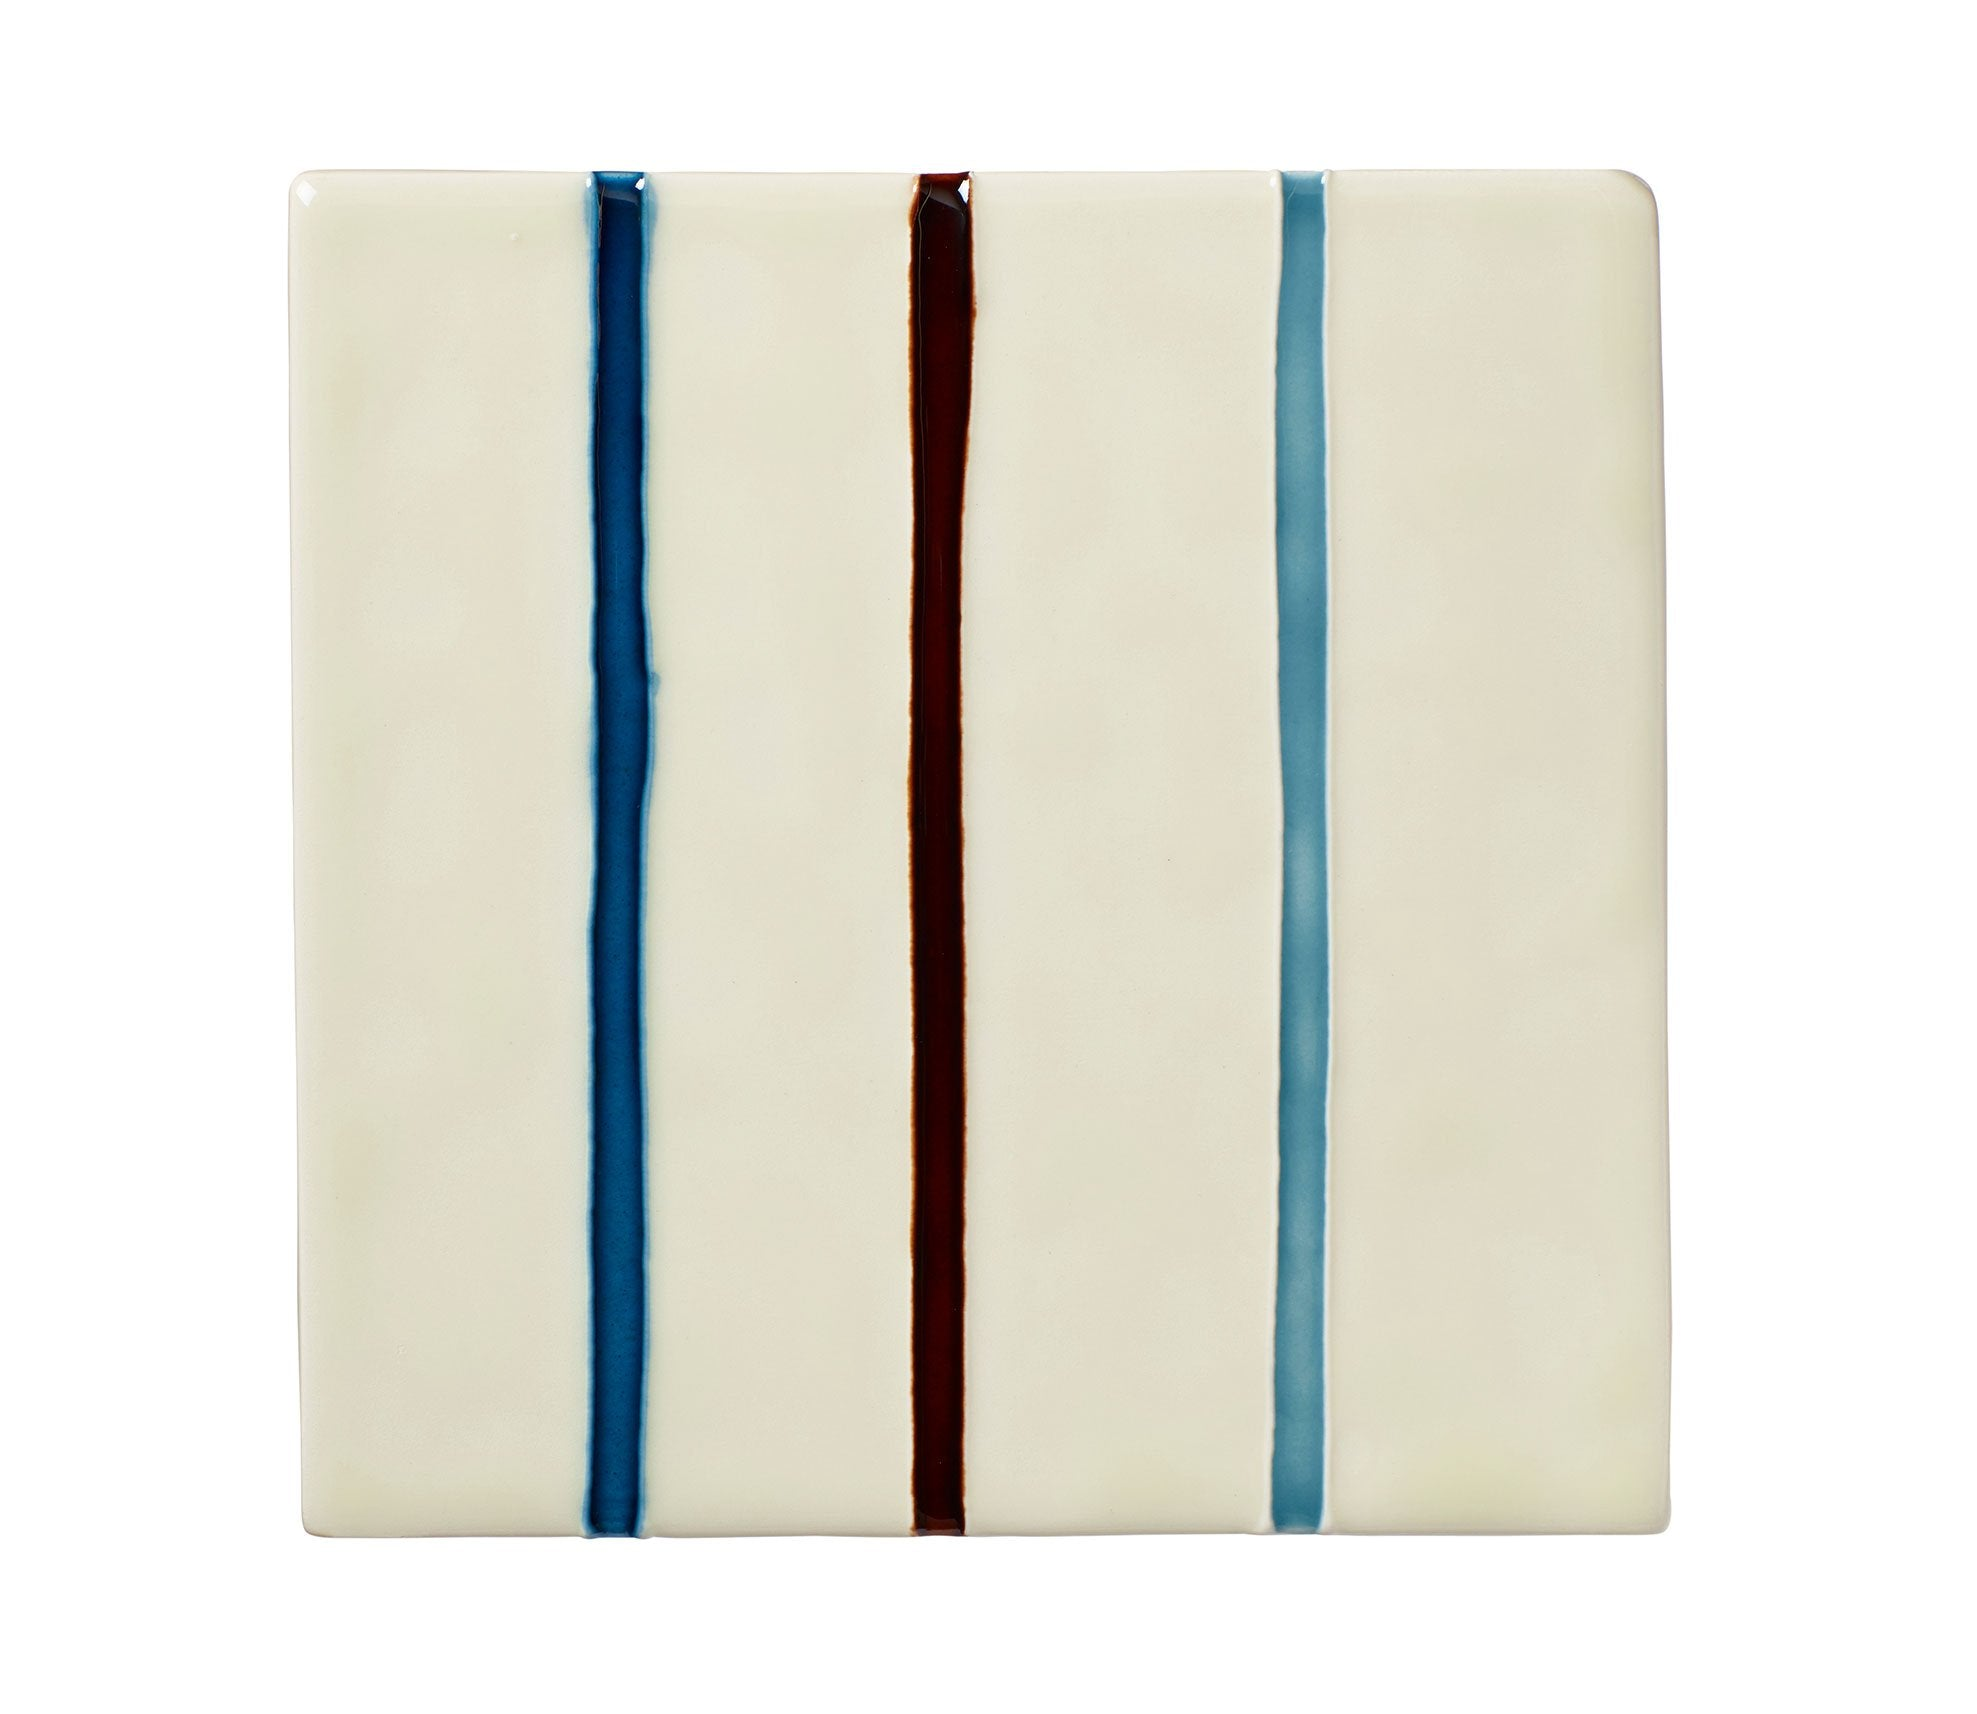 Hanley Tube Lined Decorative Tiles Product Image 9